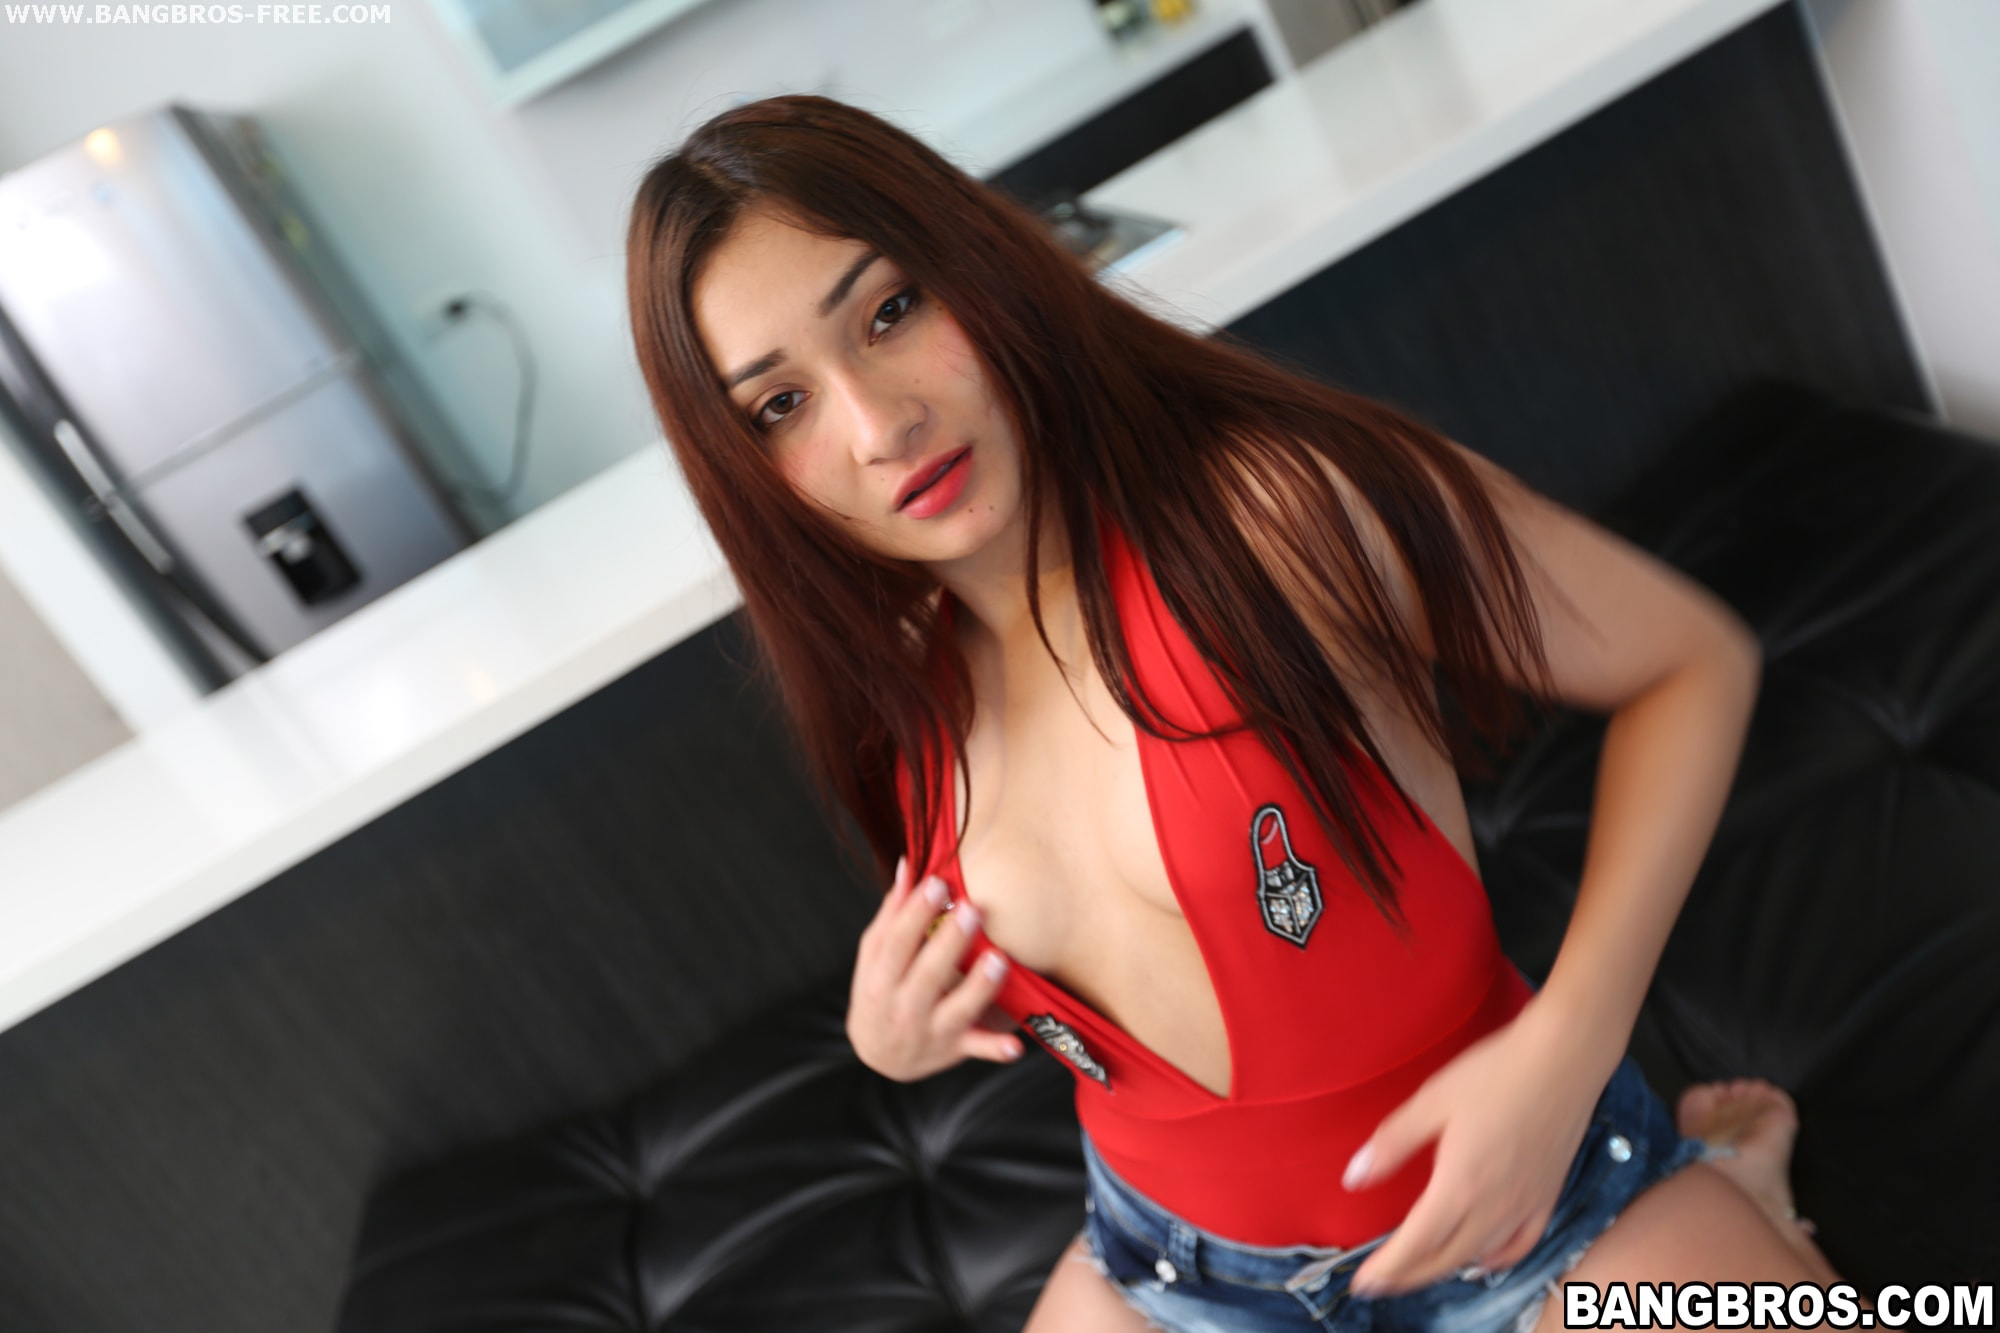 Porn Photo With Melissa Chacon